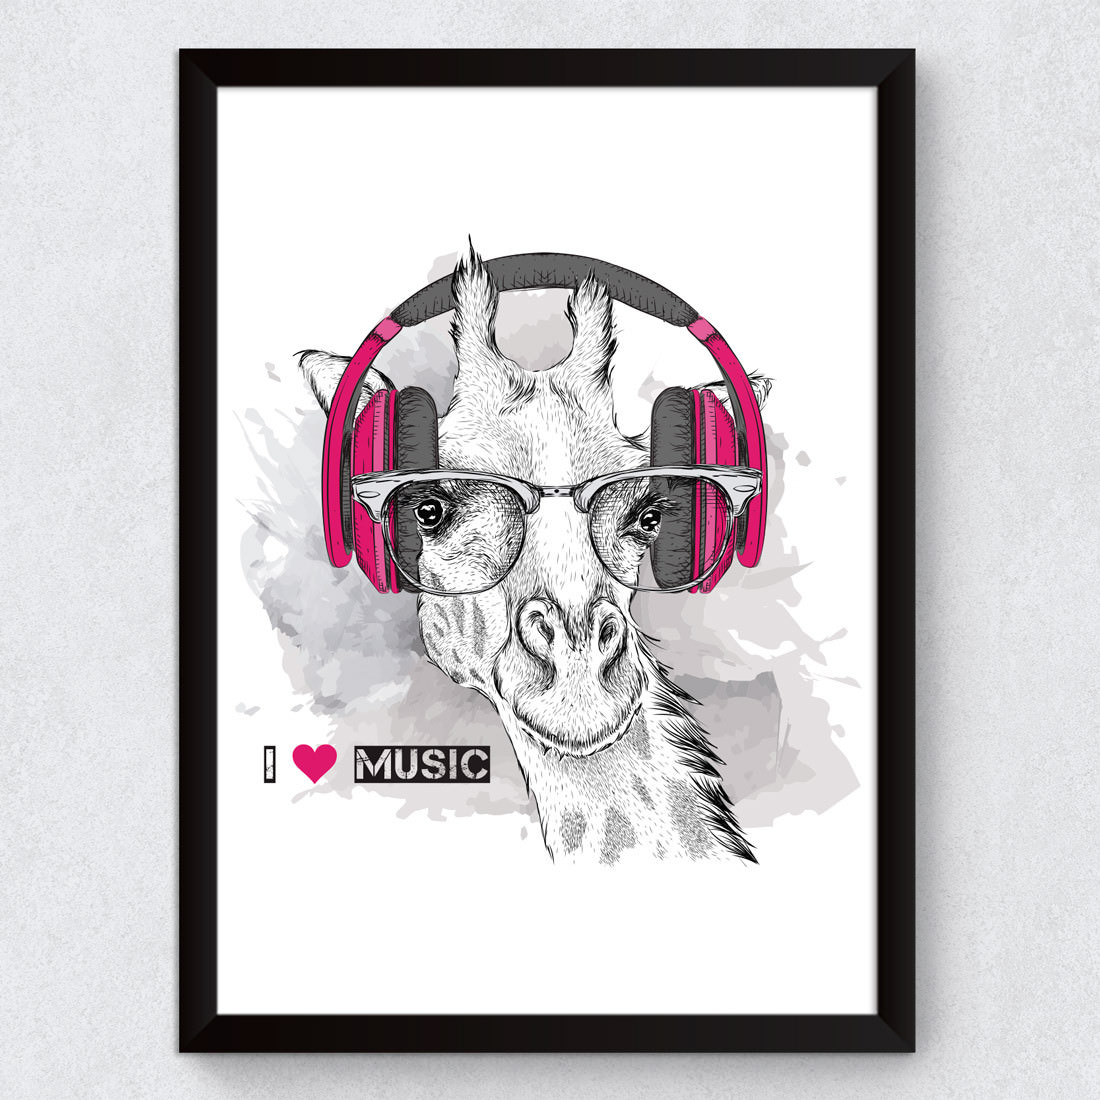 Quadro Decorativo Girafa I Love Music